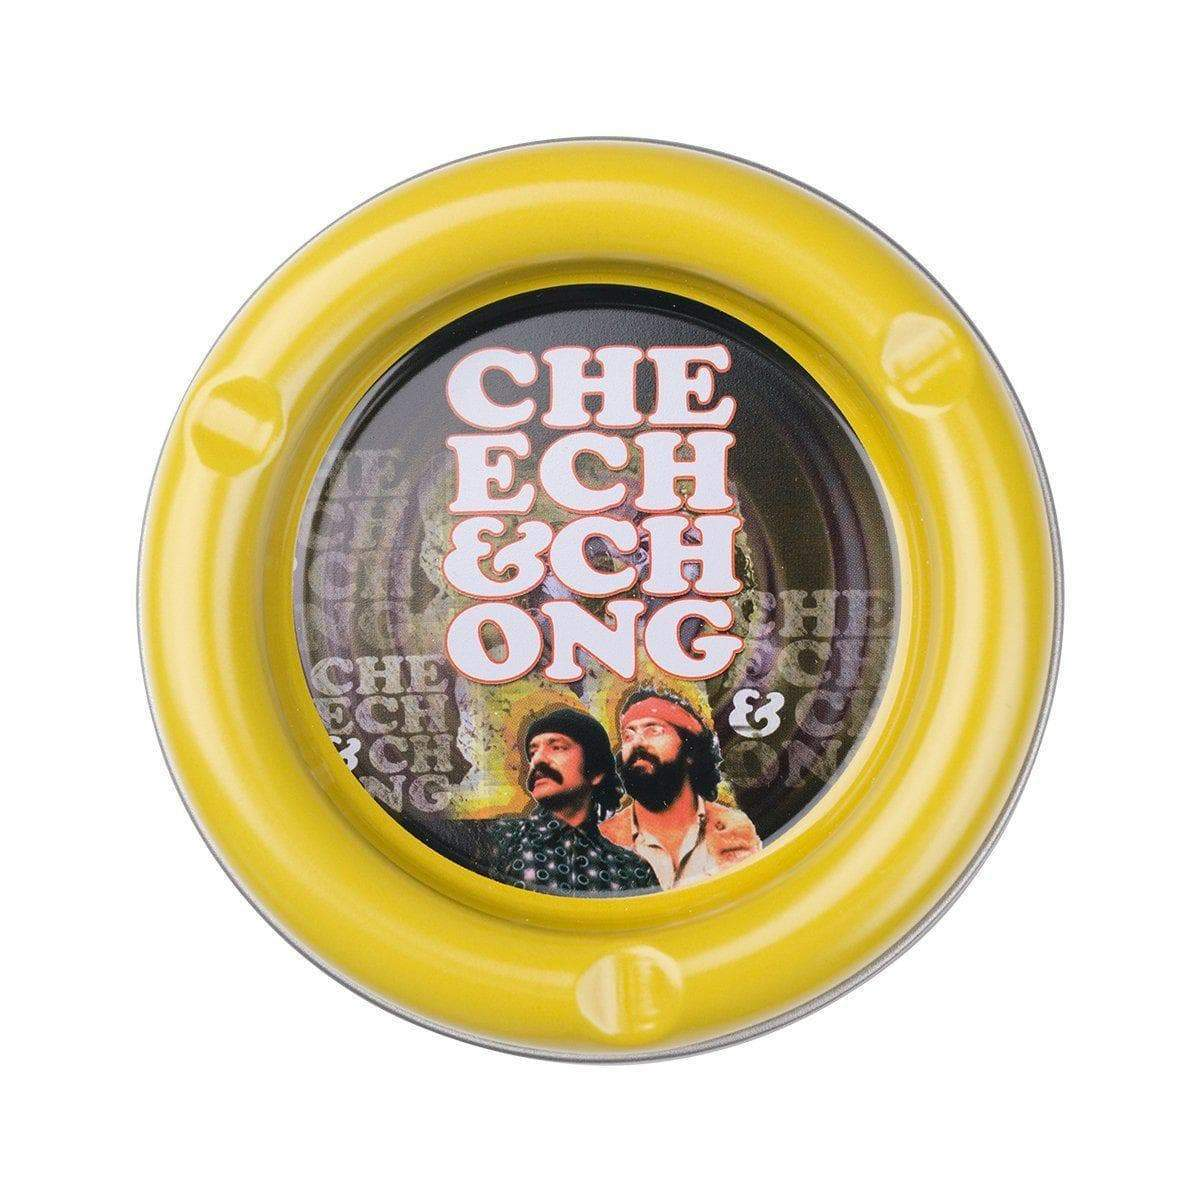 Multipurpose round stash tray plate smoking accessory in different colors with fun comedy duo Cheech n Chong designs